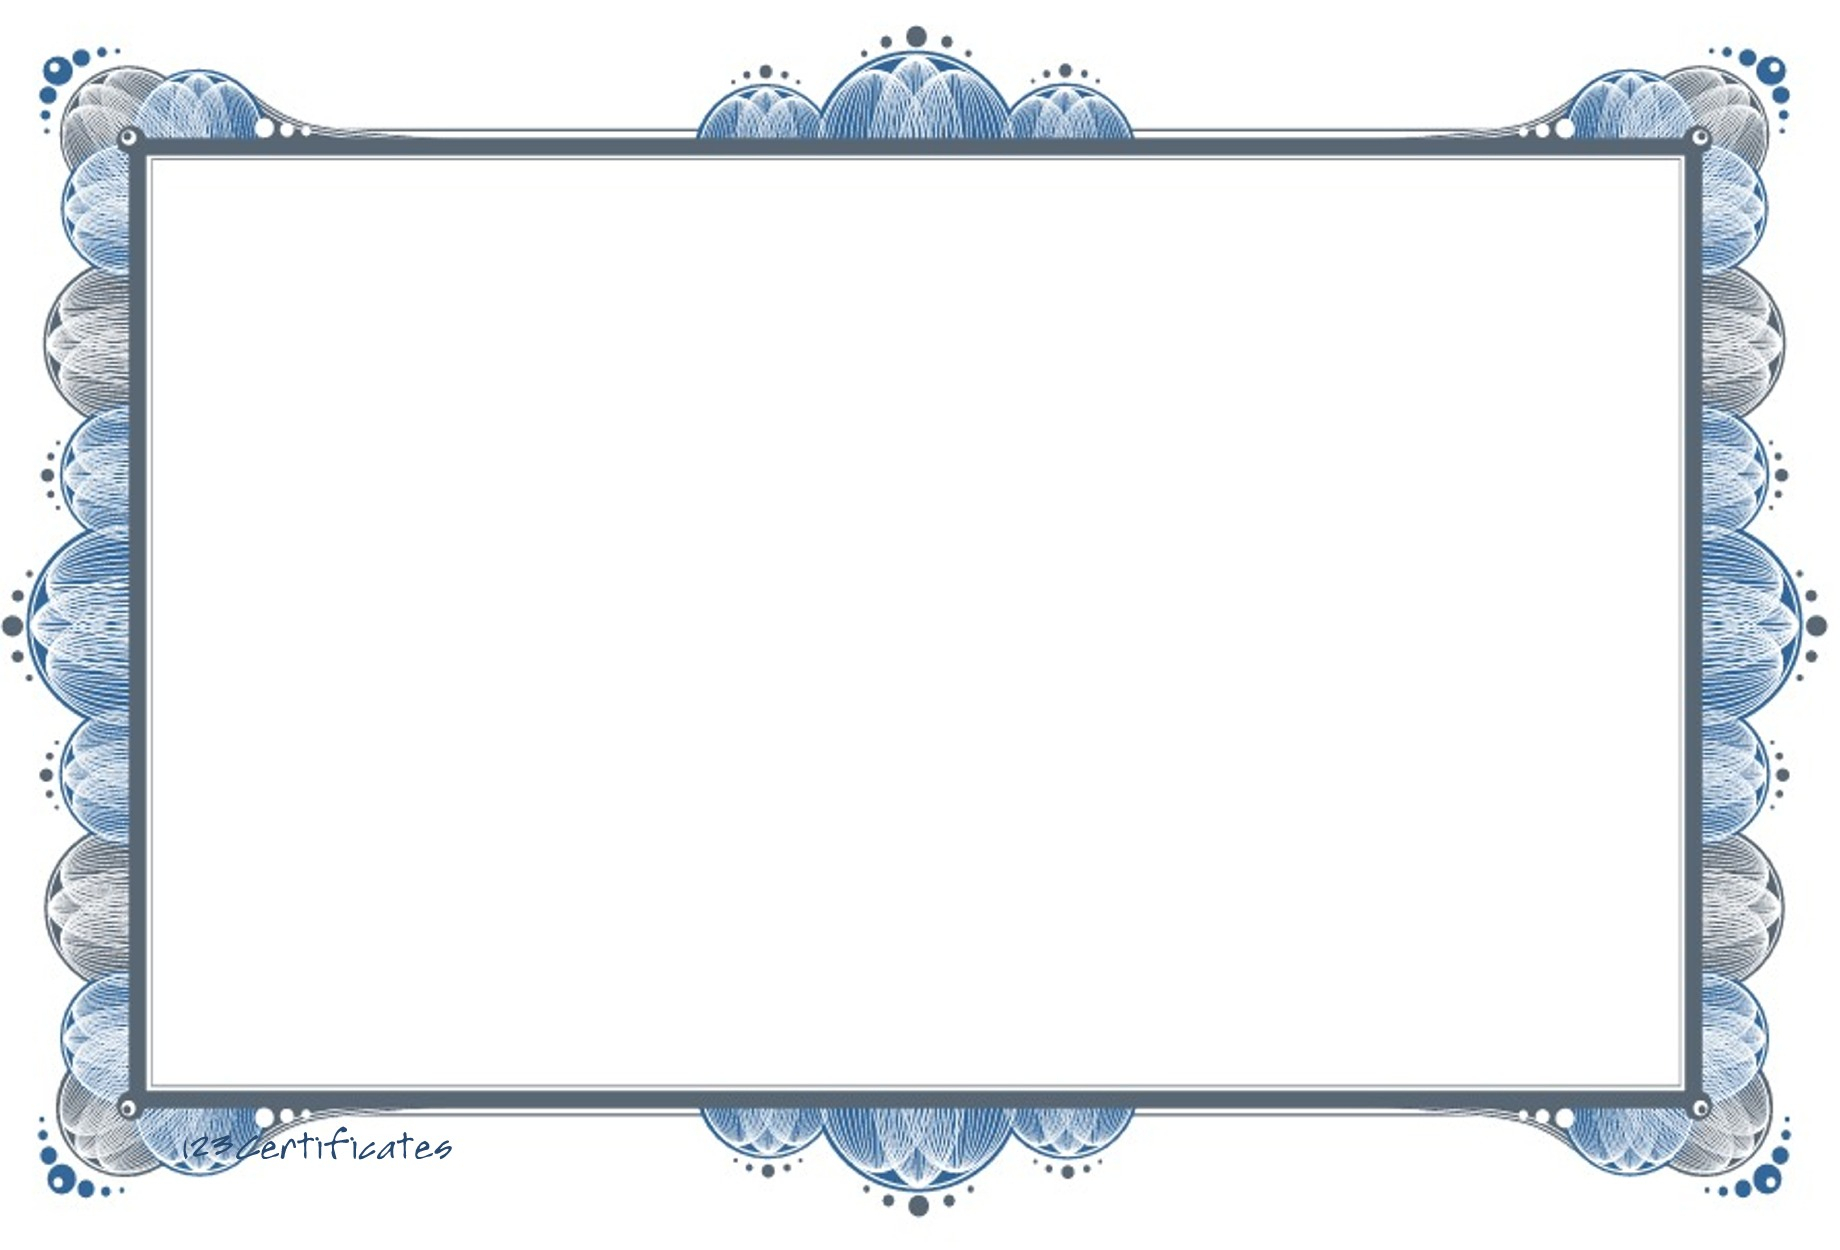 Free Certificate Borders, Download Free Clip Art, Free Clip In Award Certificate Border Template